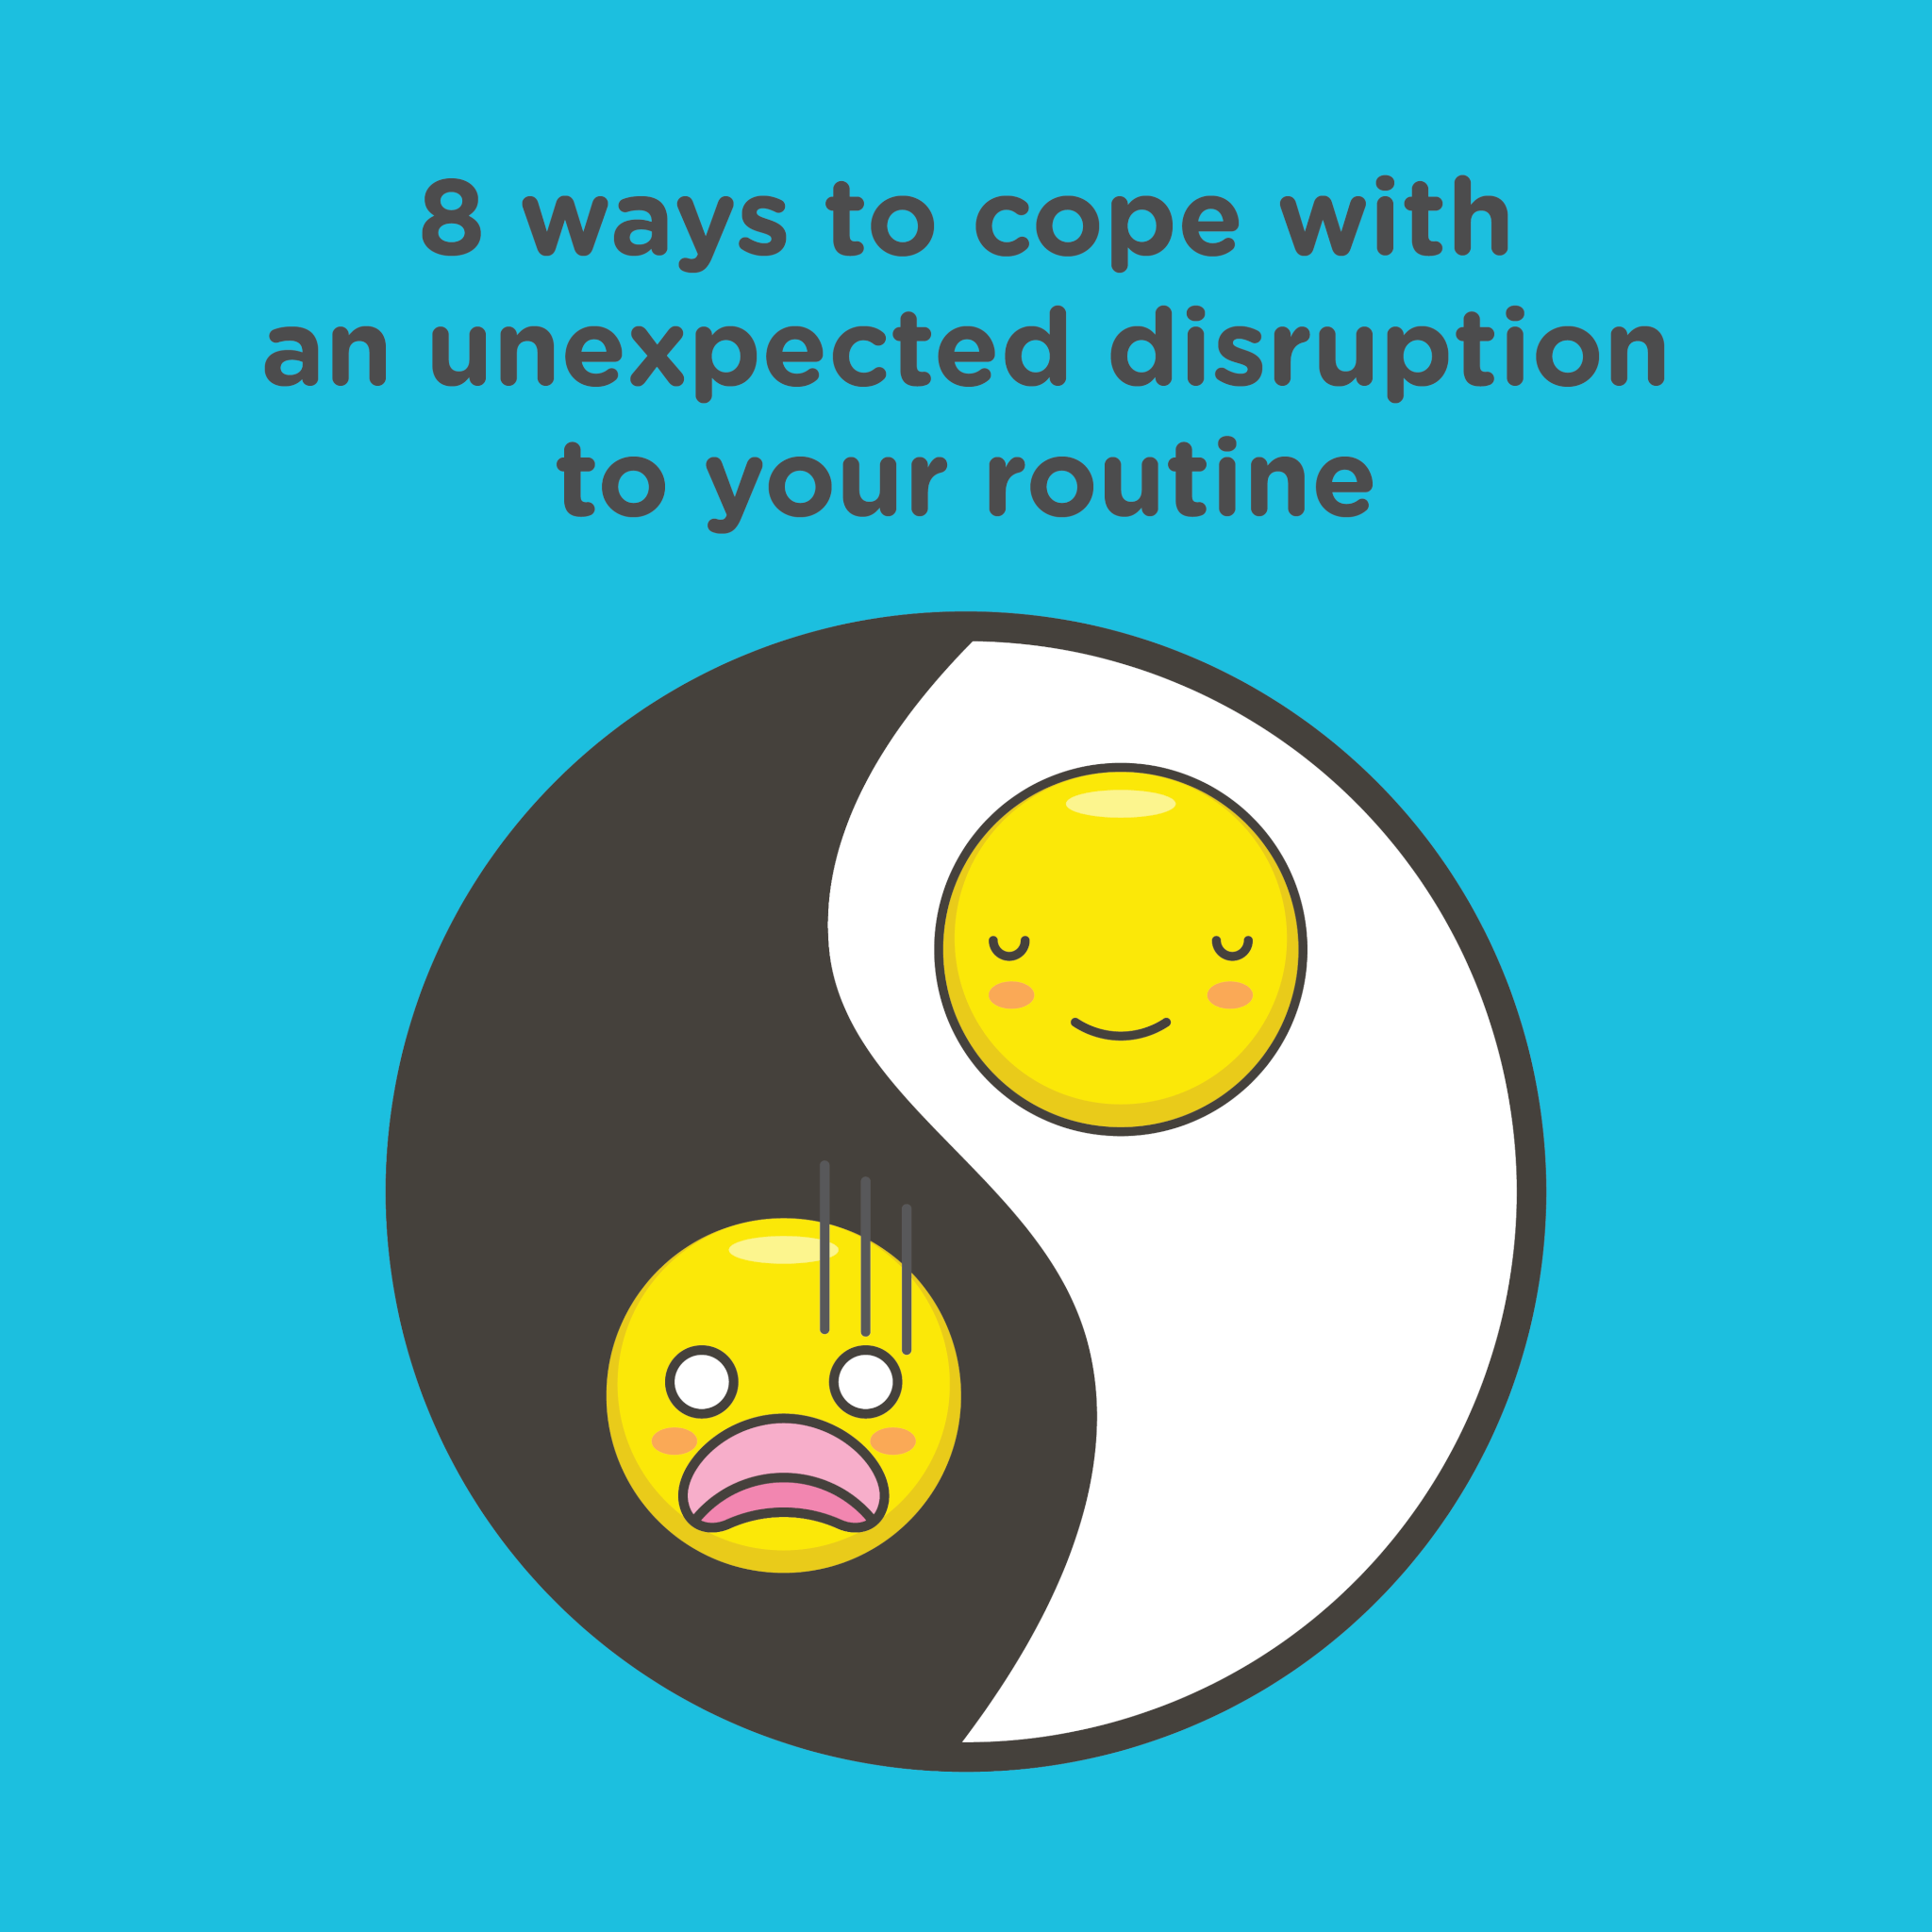 coping-with-disruptions-social